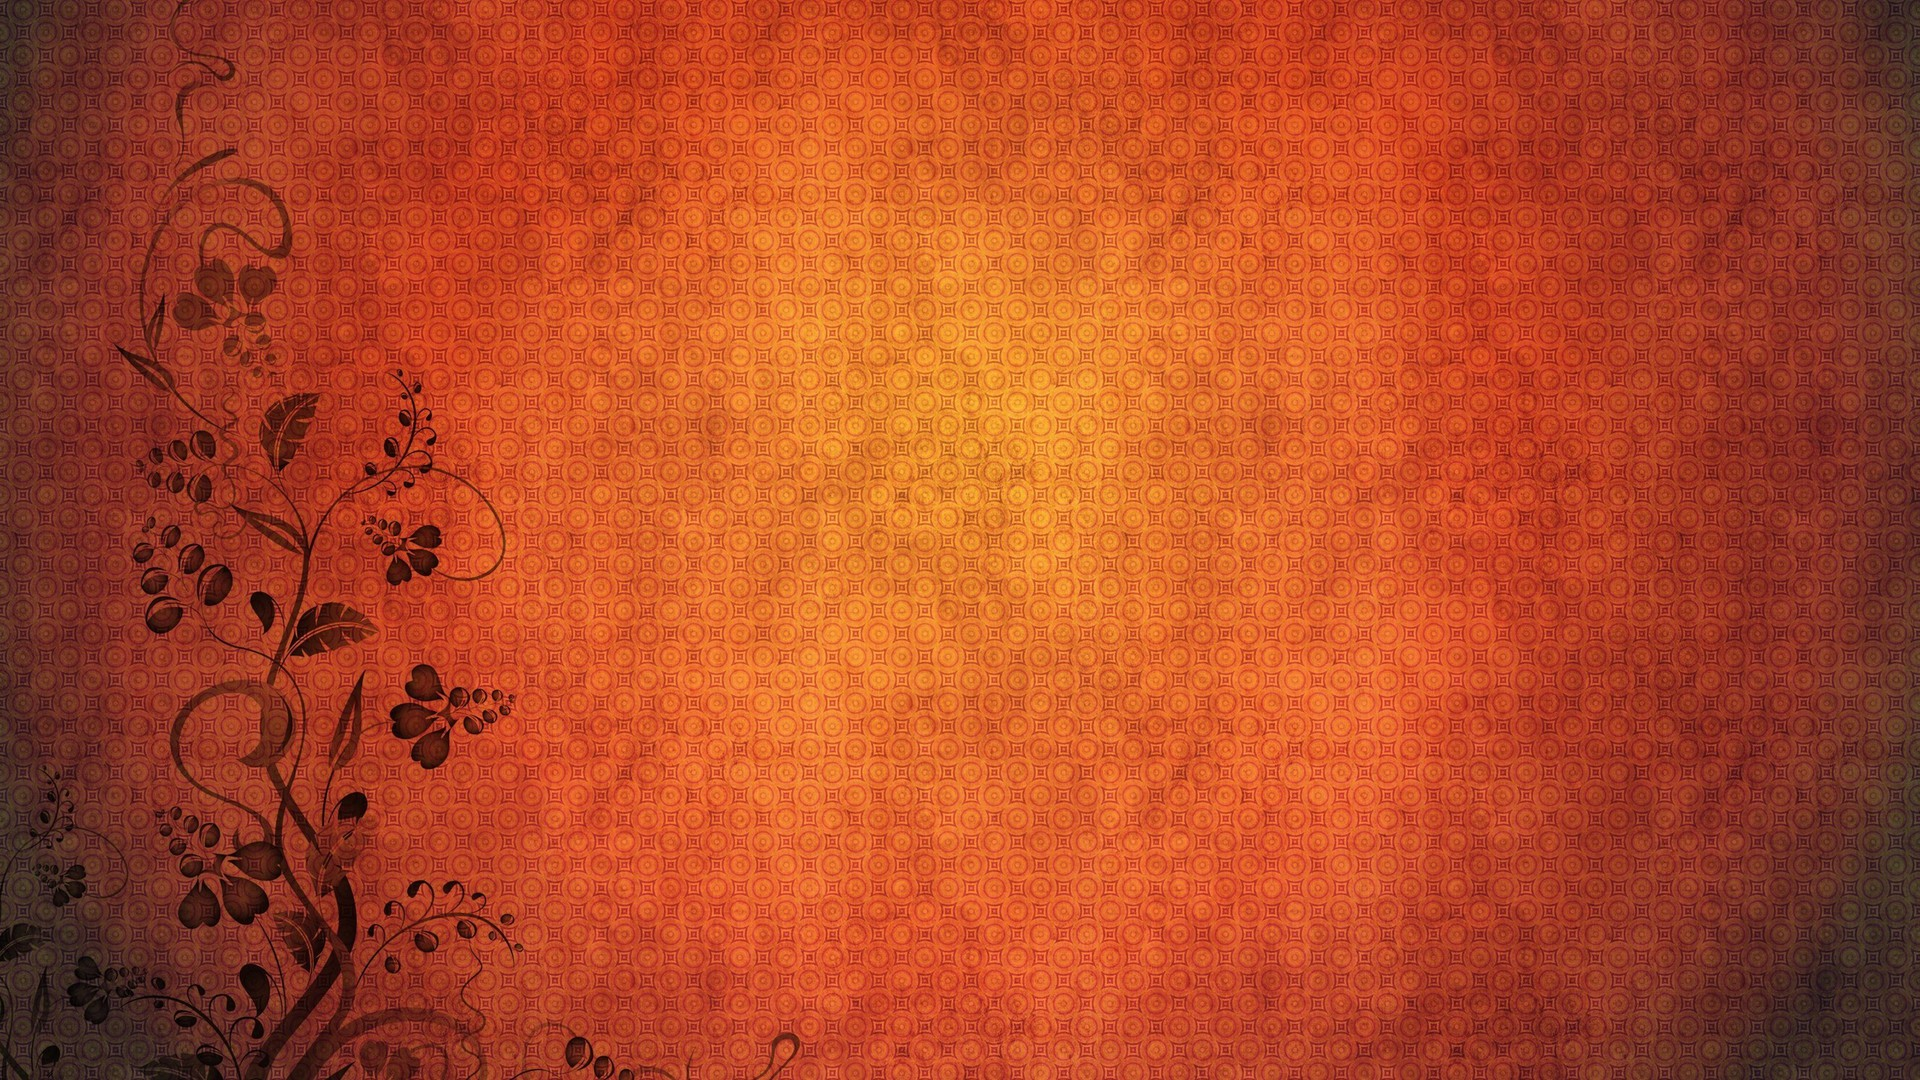 simple retro wallpaper 1920x1080 - photo #47